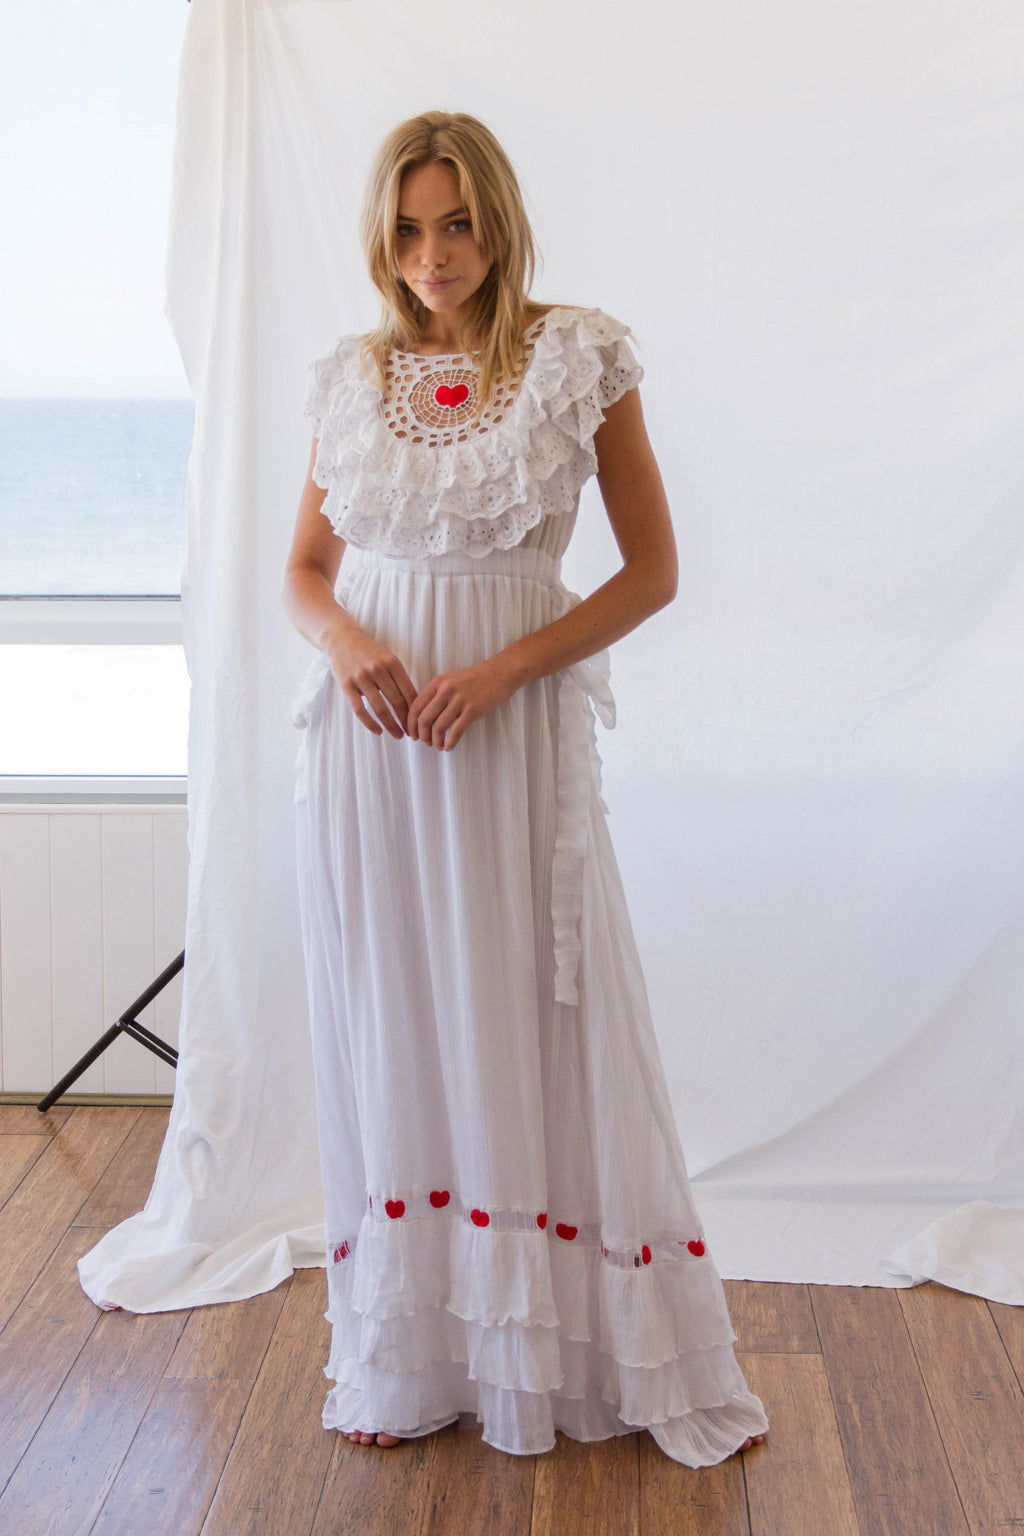 FILLYBOO - 'CHARLOTTES WEB' - EMBROIDERED GOWN - WHITE